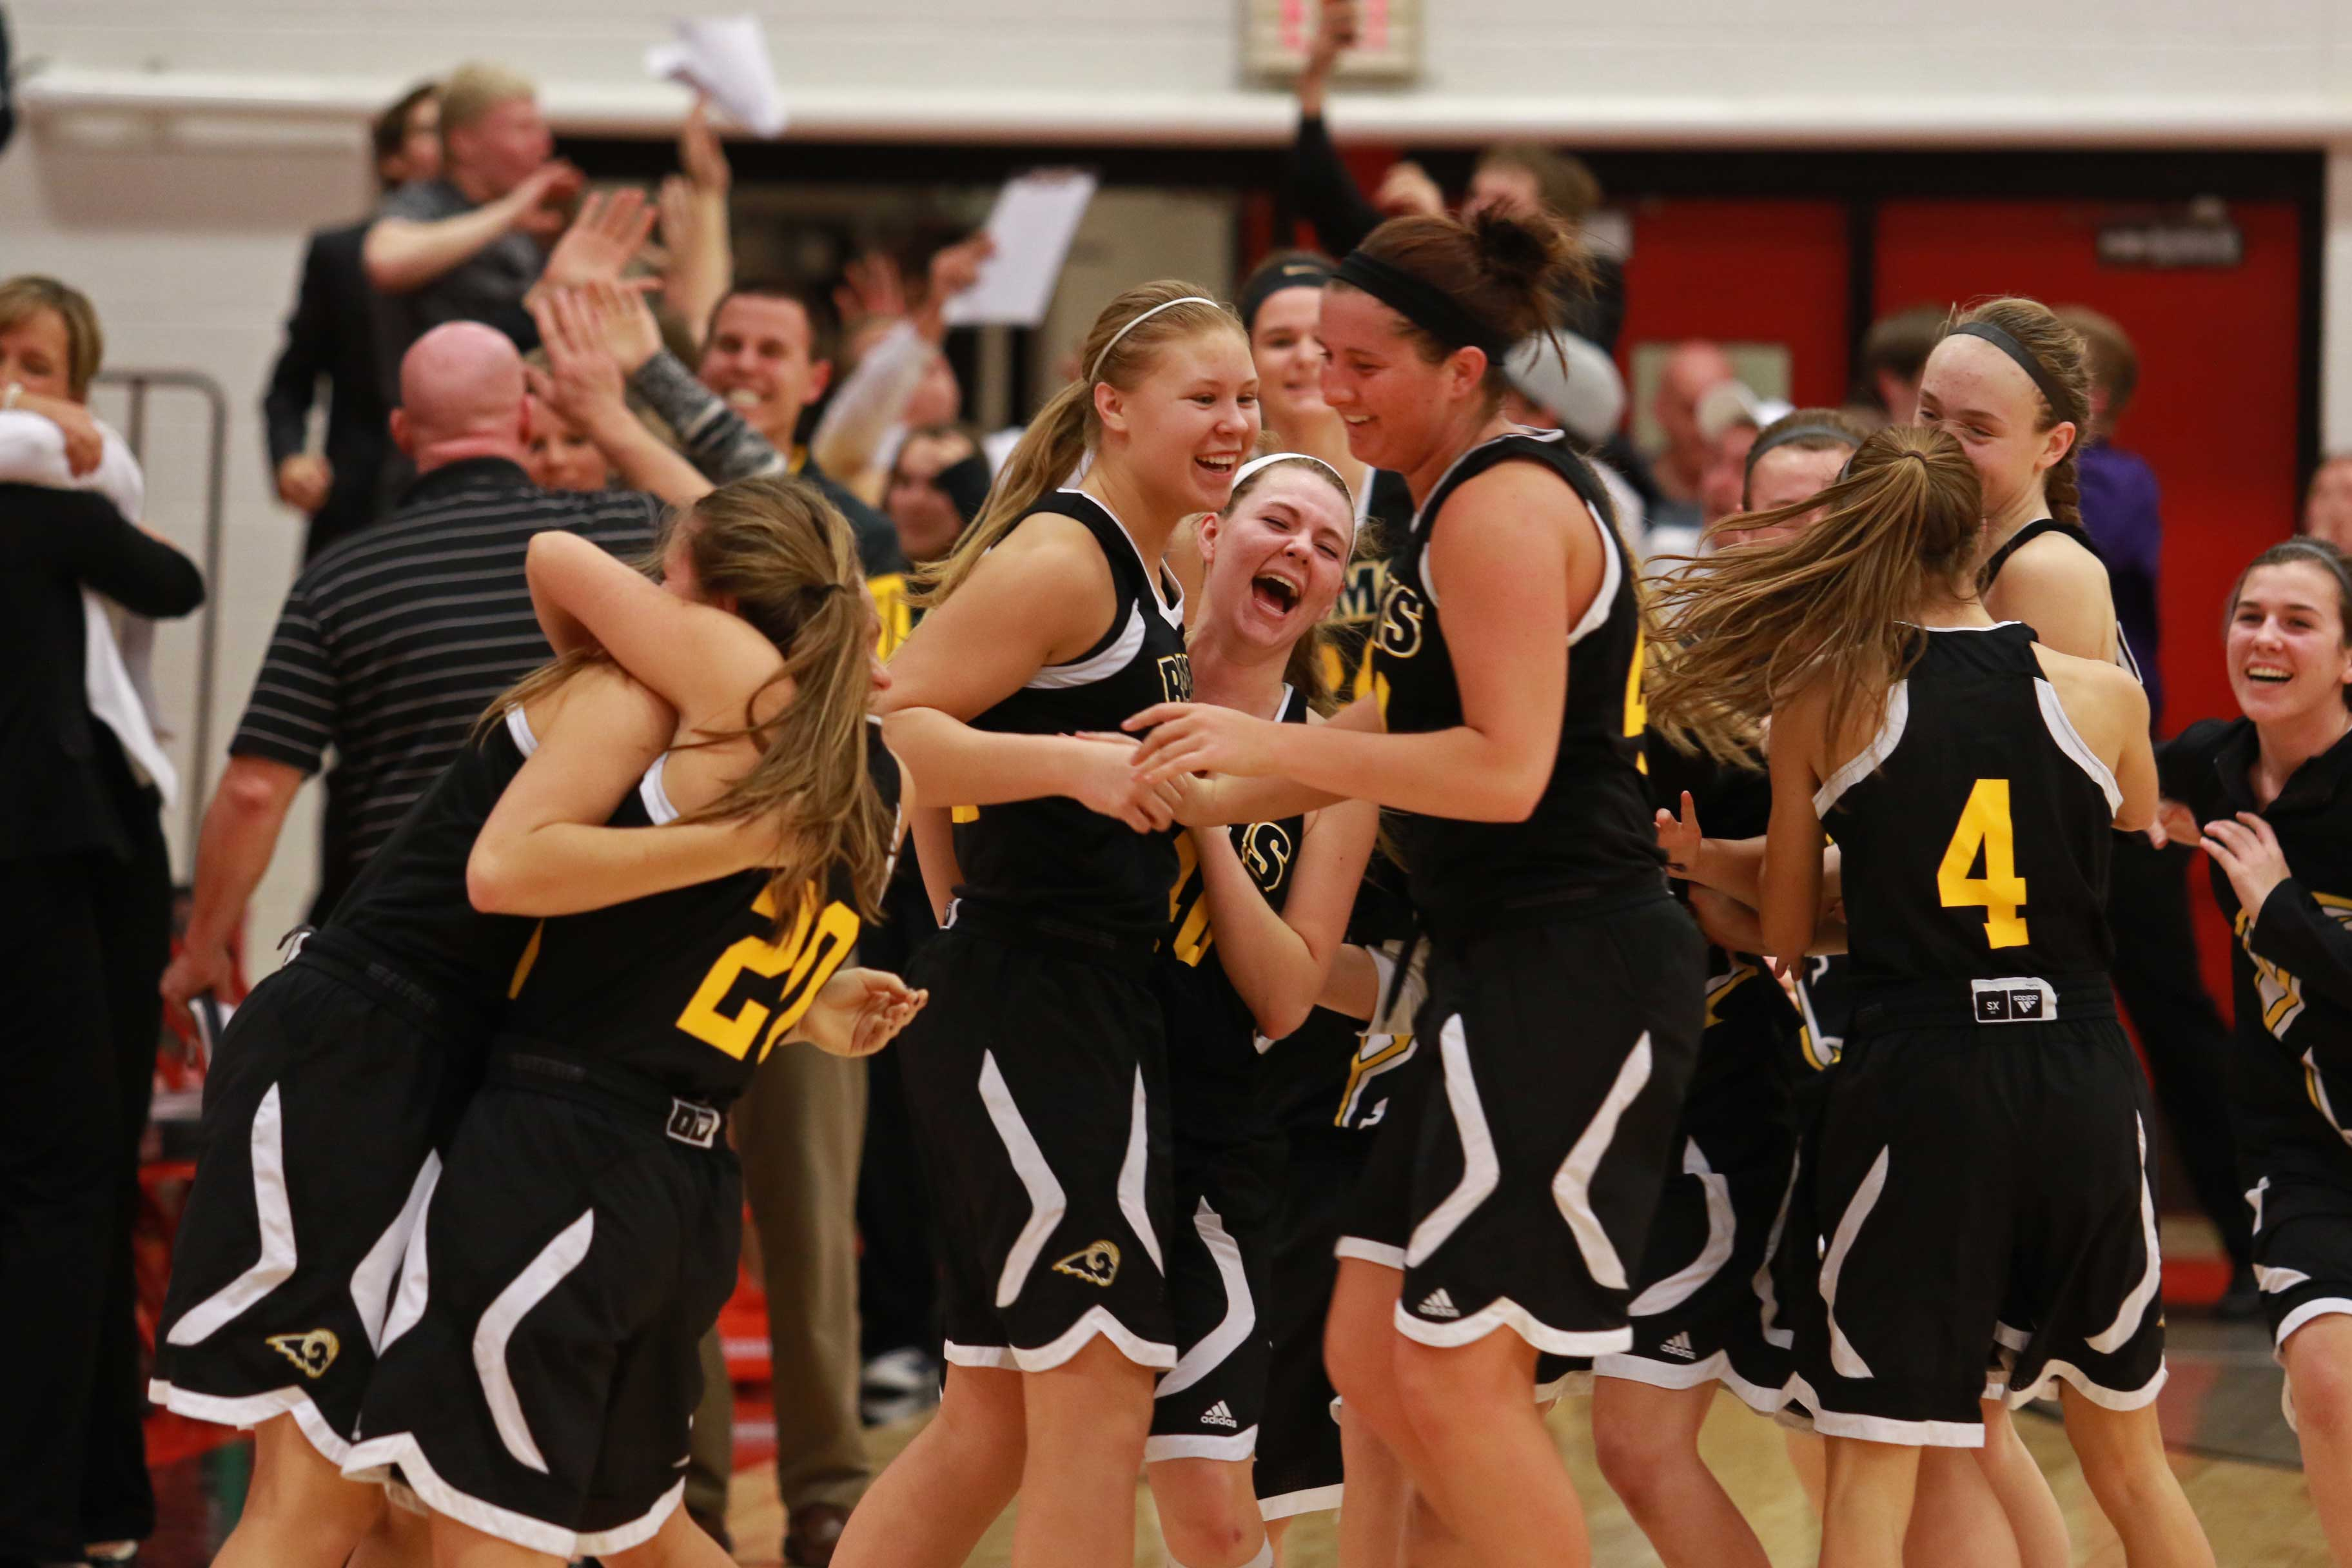 Southeast+Polk+girls+celebrate+after+their+win+over+City+High+advancing+them+to+the+state+tournament.